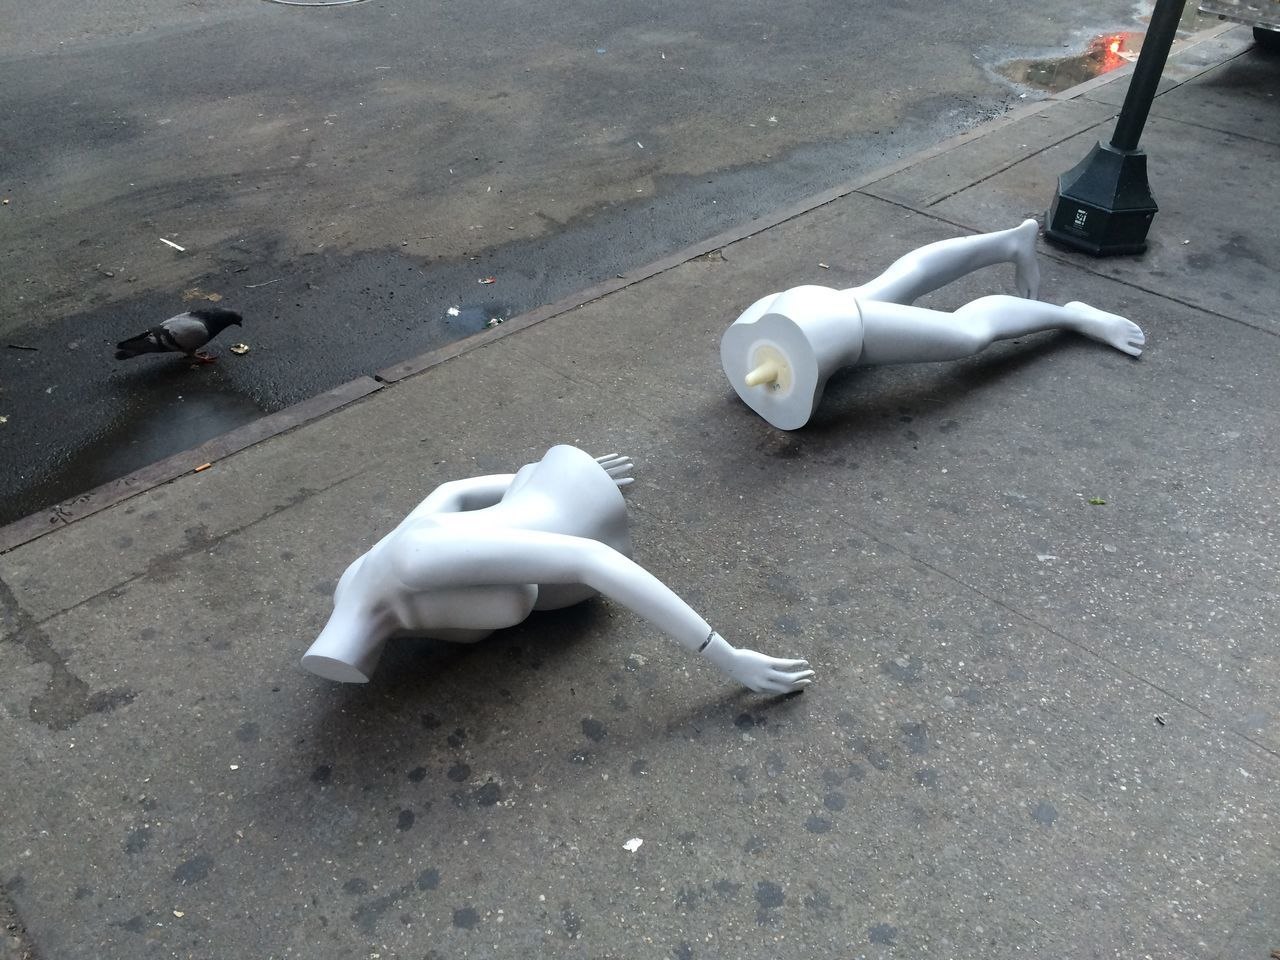 High Angle View Of Broken Mannequin On Footpath